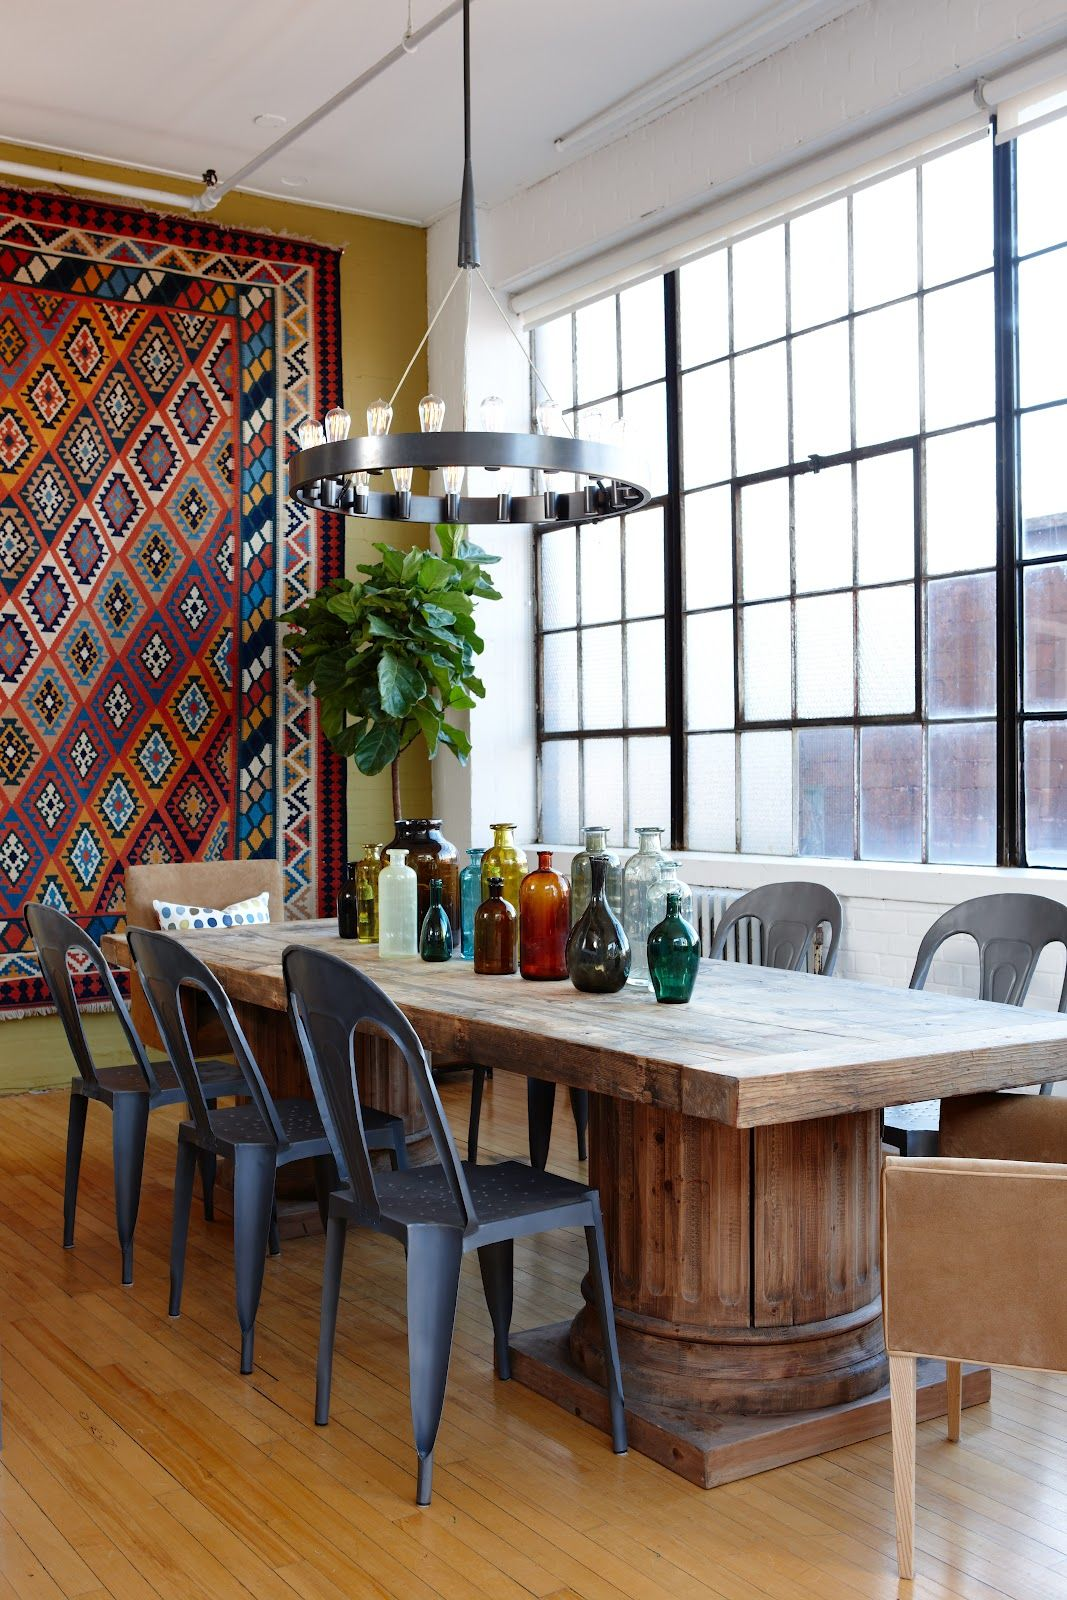 Amazing 39 Original Boho Chic Dining Room Designs : Boho Chic Dining Room  Designs With White Brown Wall Big Window Wooden Dining Table Chair Bar  Stool ...